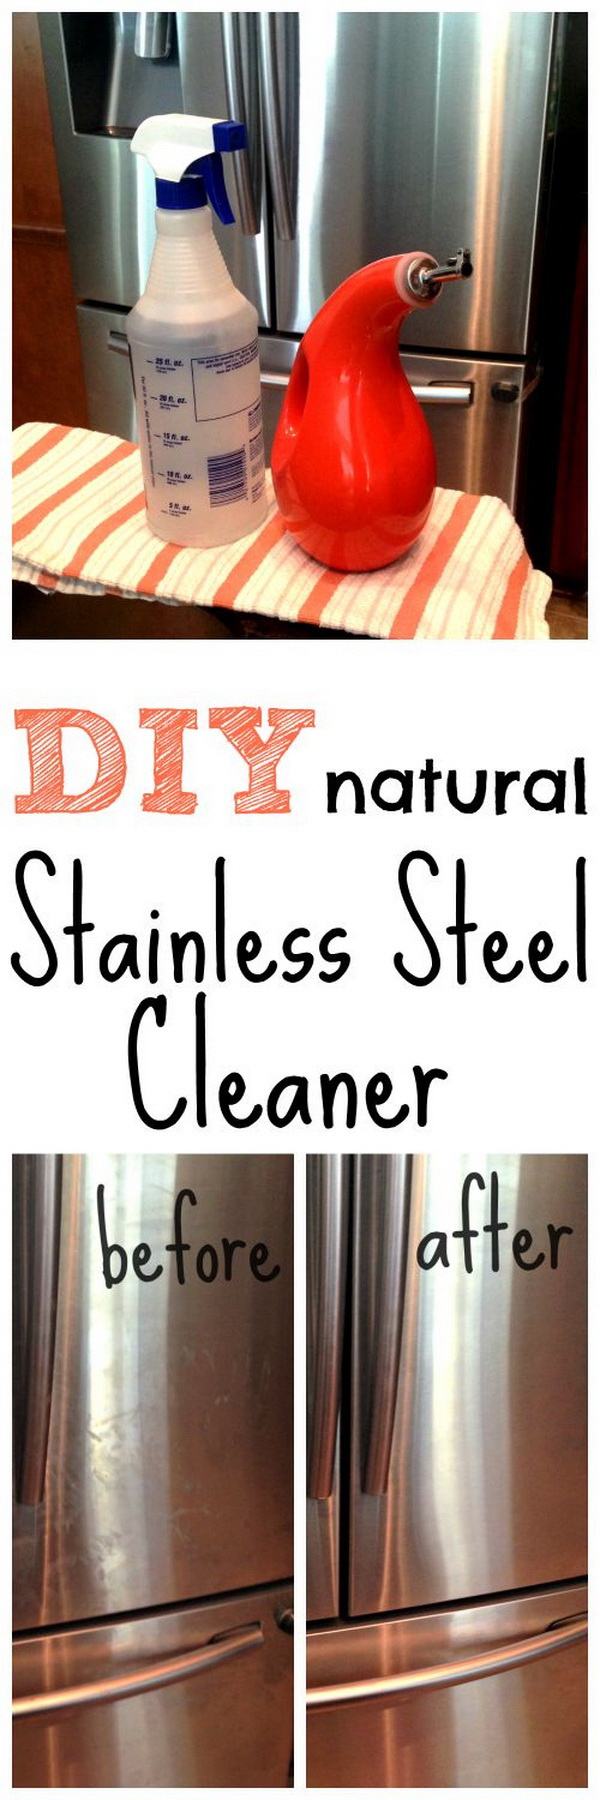 Homemade Stainless Steel Cleaner. Making your own household products and save a ton of money on the essentials. Get the recipes from for creativejuice.com